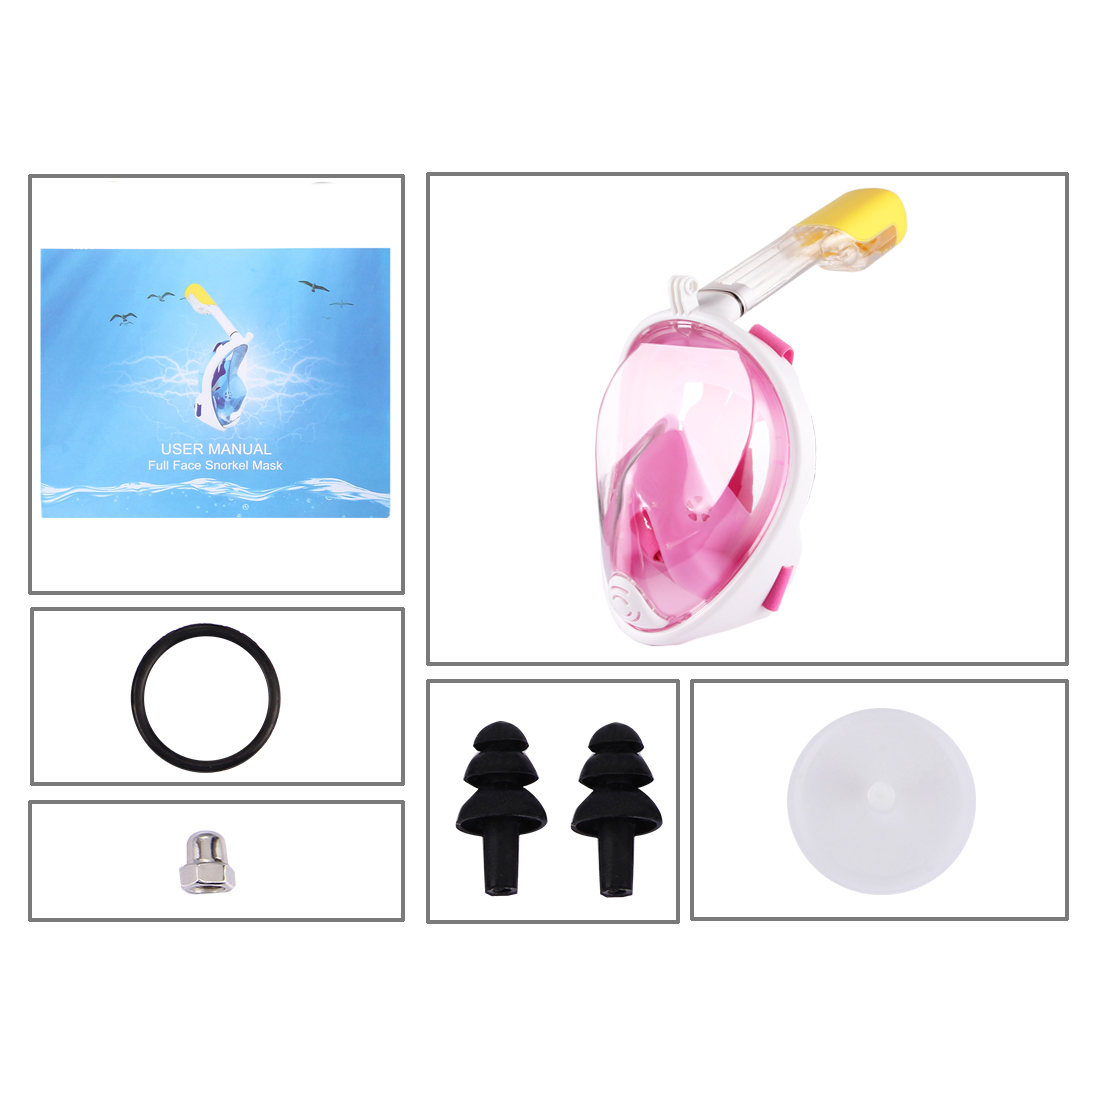 PULUZ 220mm Tube Water Sports Diving Equipment Full Dry Snorkel Mask for GoPro HERO5 /4 /3+ /3 /2 /1, S/M Size (Pink)